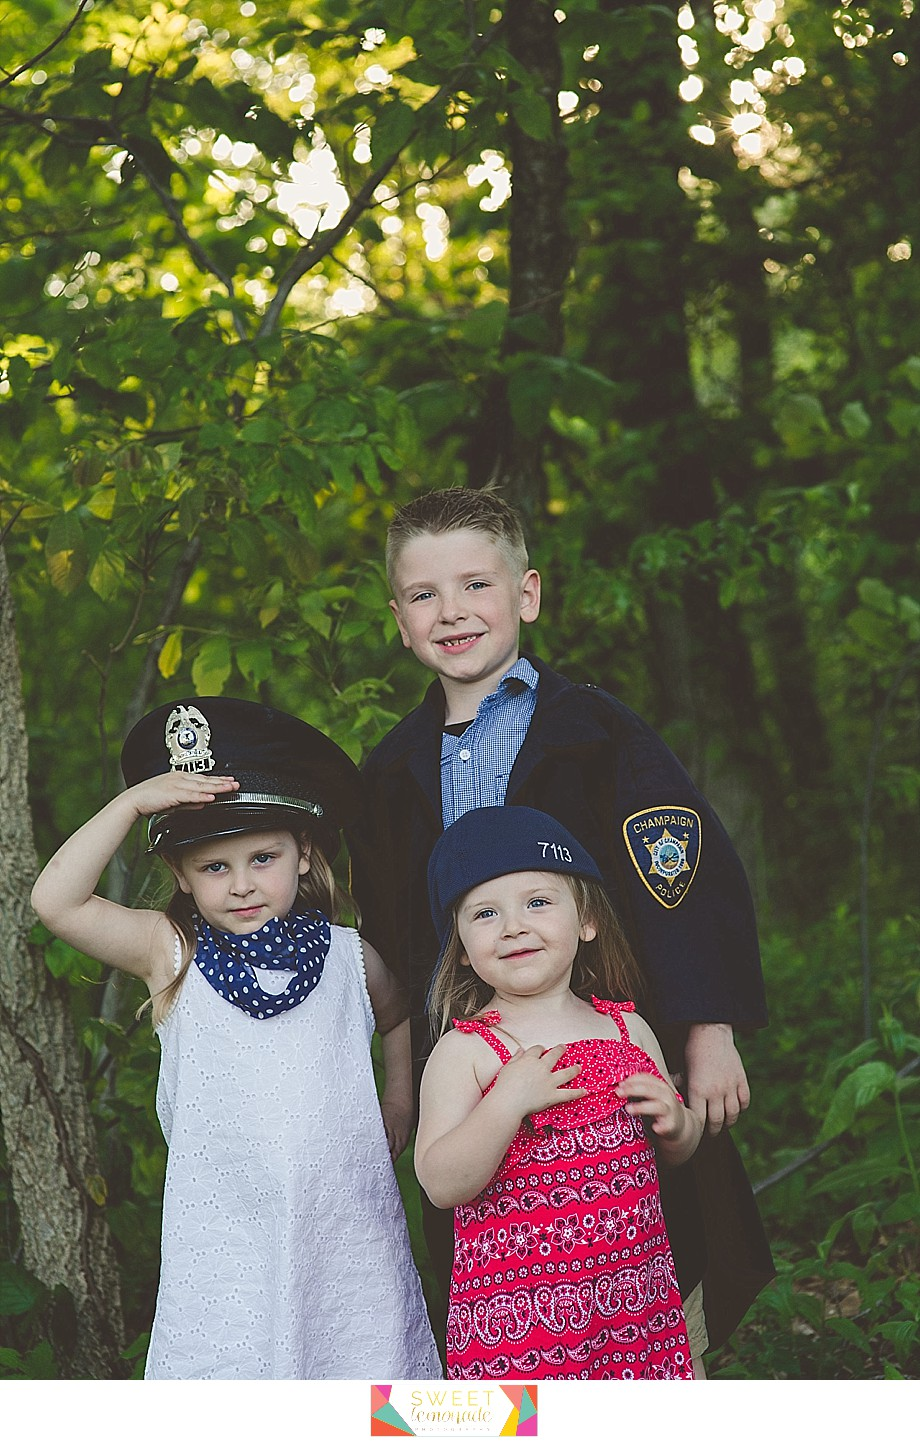 Lake-of-the-woods-Mahomet-central-IL-family-photographer-Champaign-Police-Fathers-Day-Sweet Lemonade Photography_0169.jpg